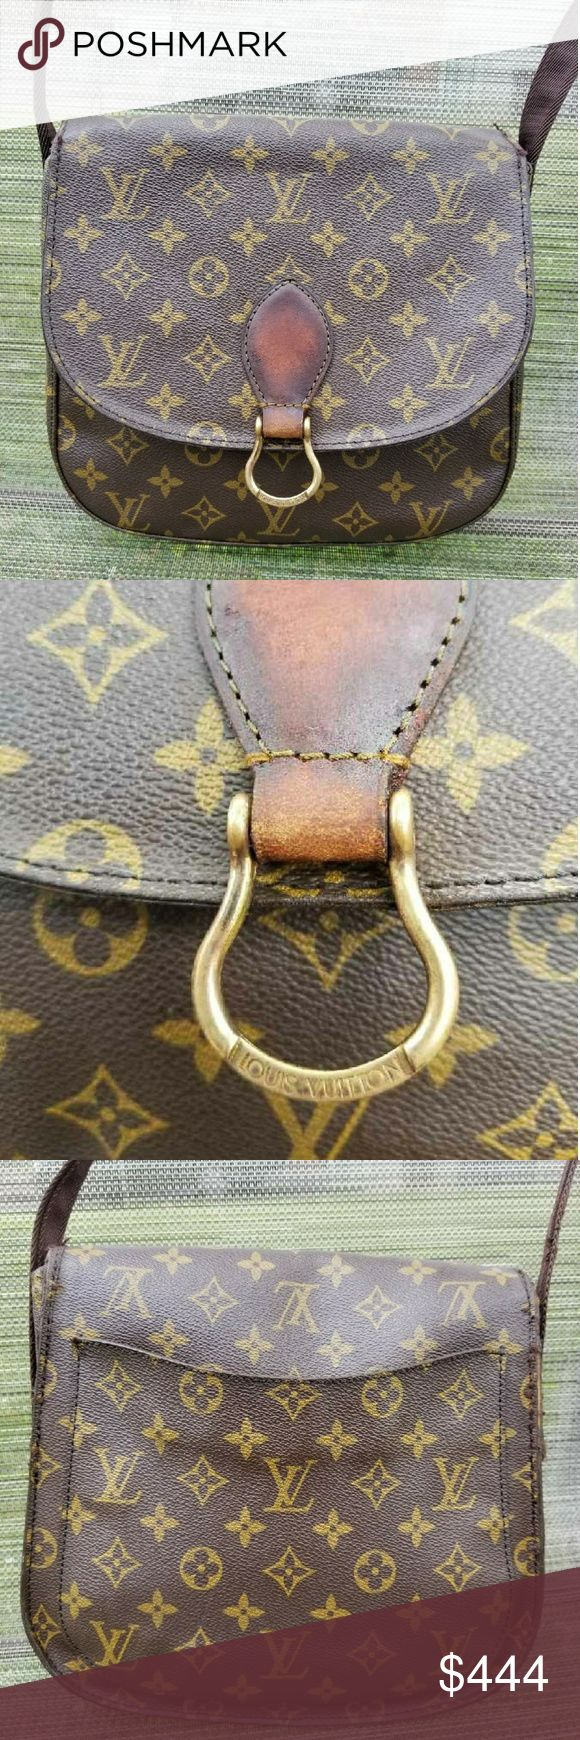 25 best ideas about louis vuitton crossbody on pinterest